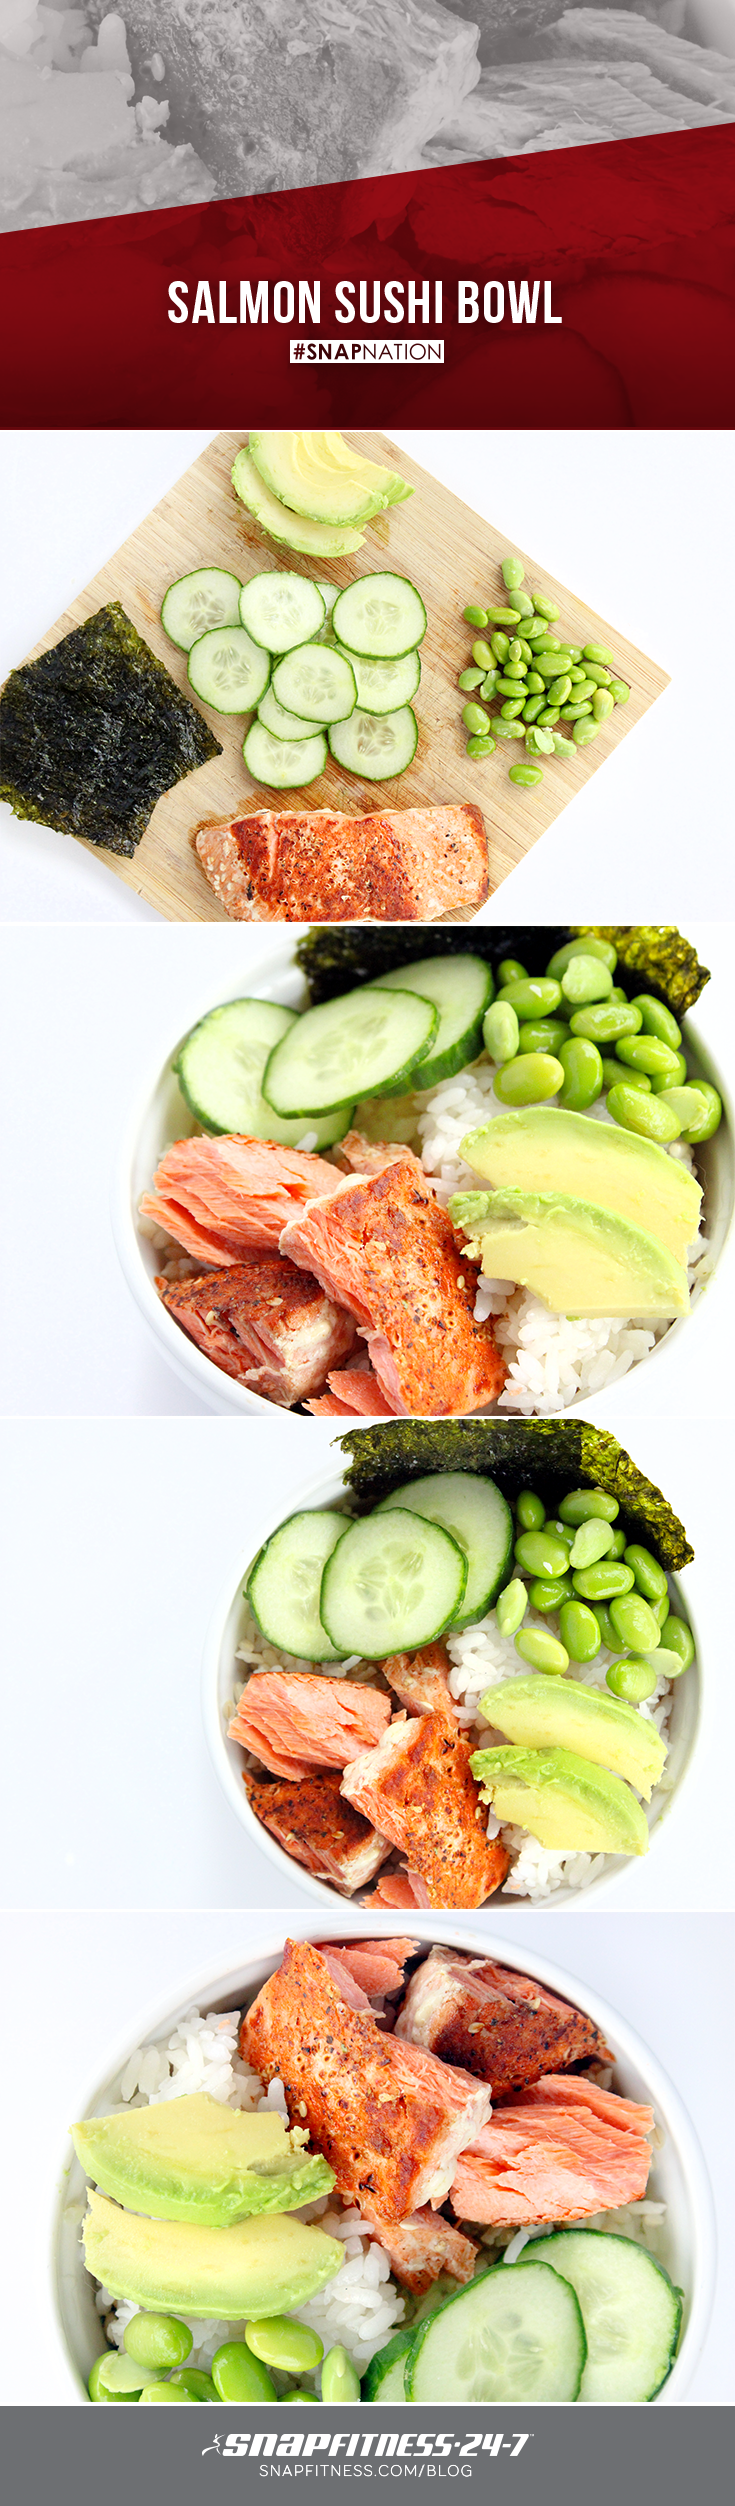 Sushi bowls can be just as delicious as sushi rolls (and much easier to prepare at home)! Whip up this great salmon, avocado, cucumber Sushi Bowl today.